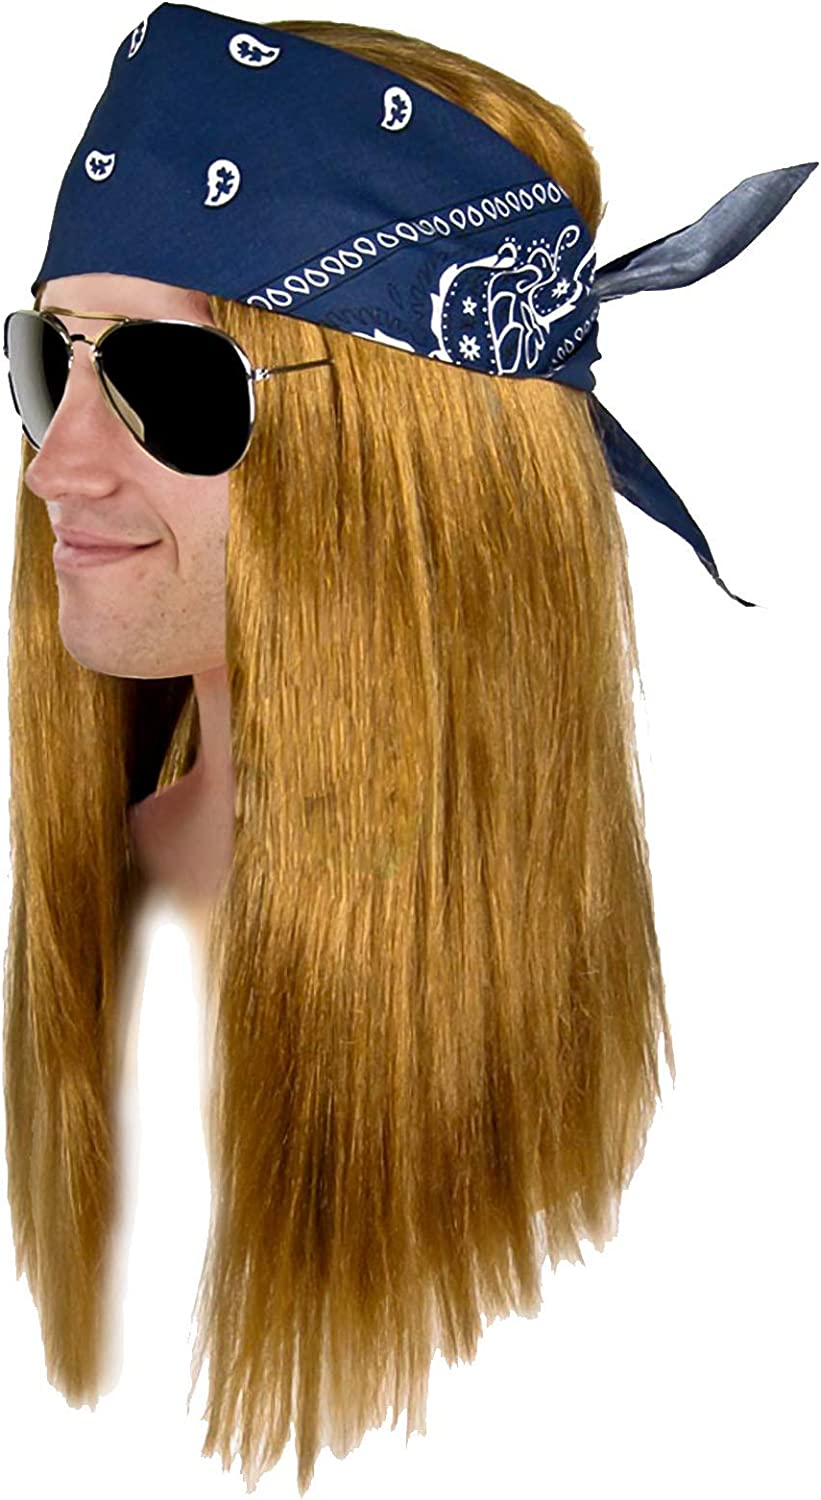 Axl Rose Wig 80s 90s Rocker Kit Mens Fancy Dress Costume Accessory